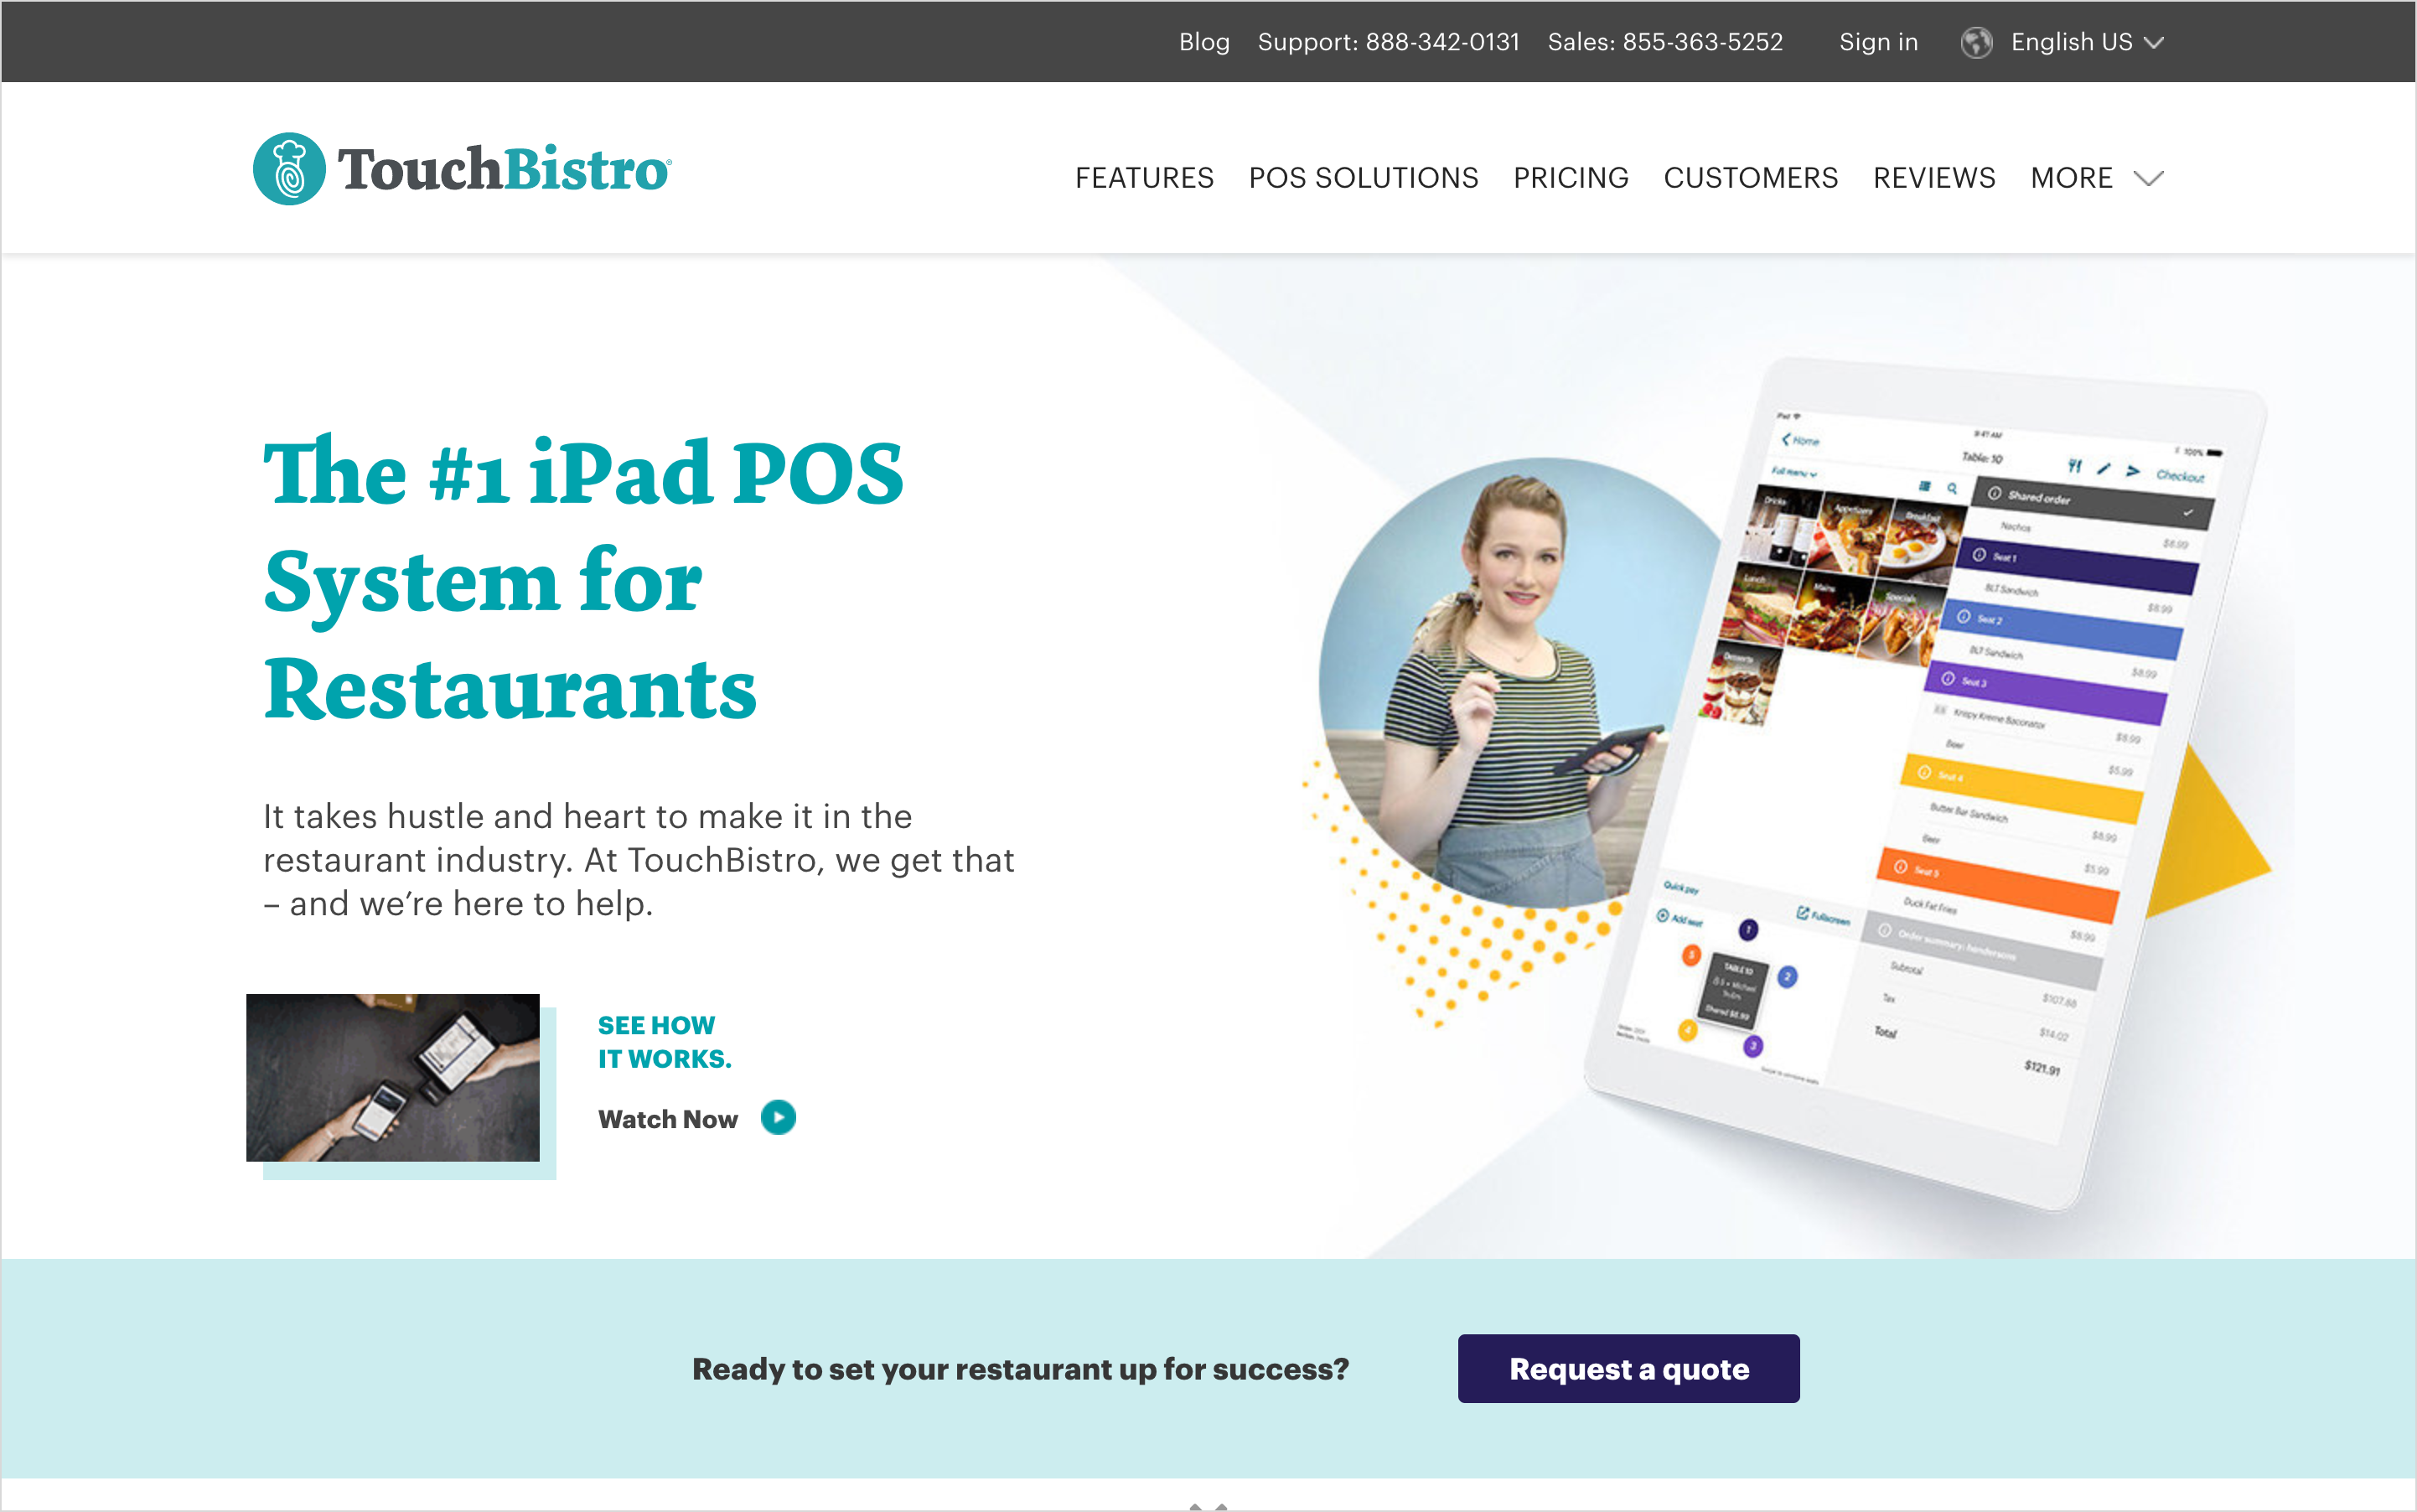 touchbistro homepage